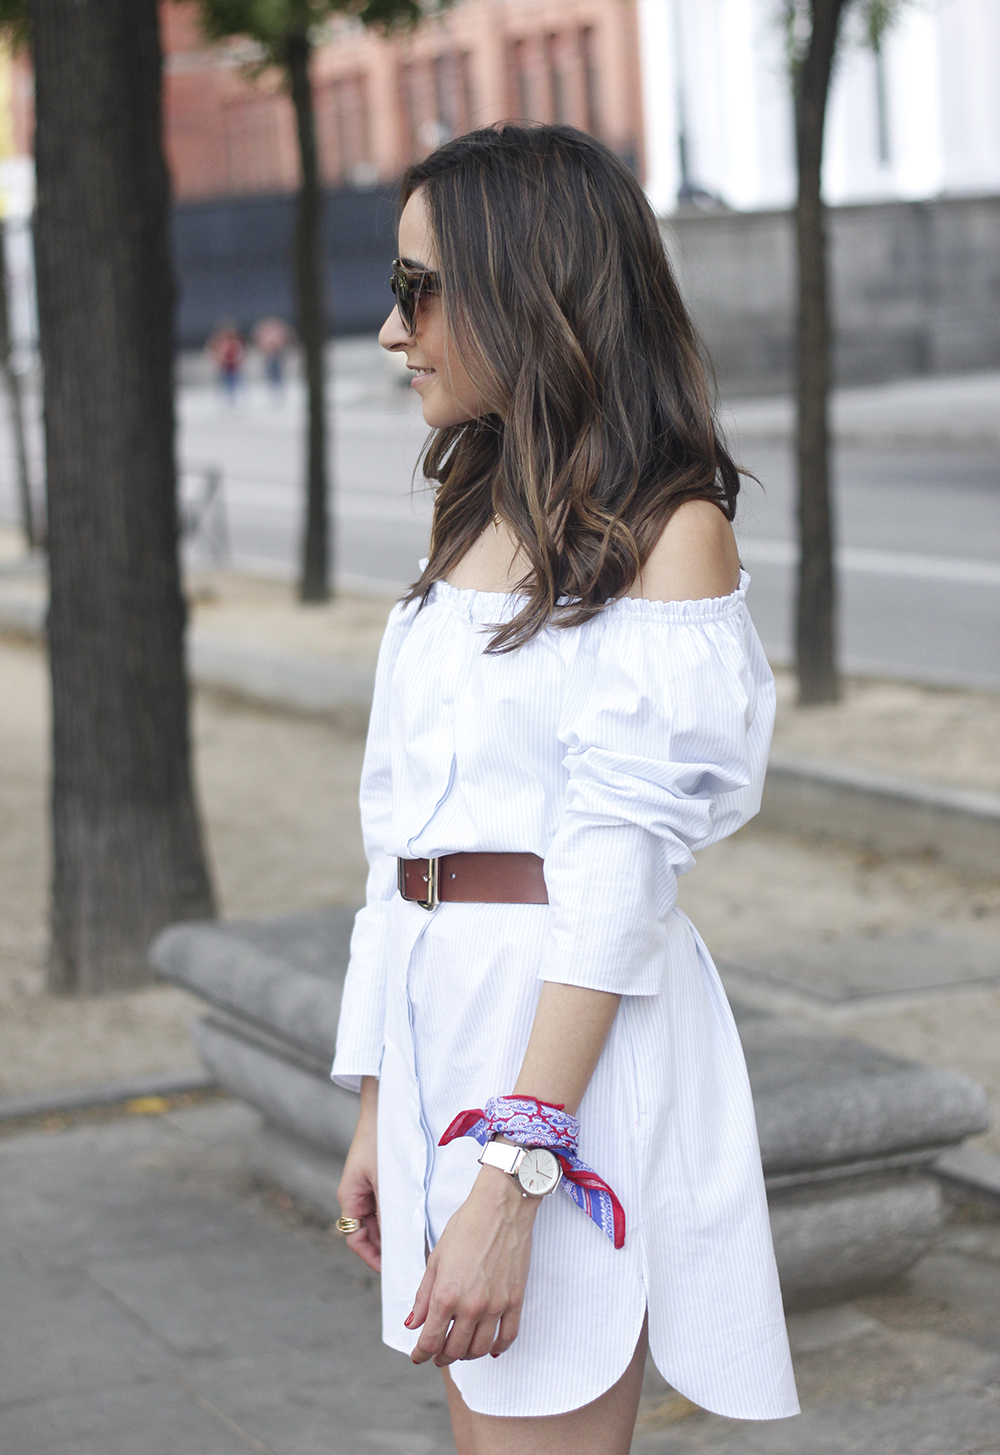 Off the shoulders striped dress belt summer outfit wedges sunnies style18